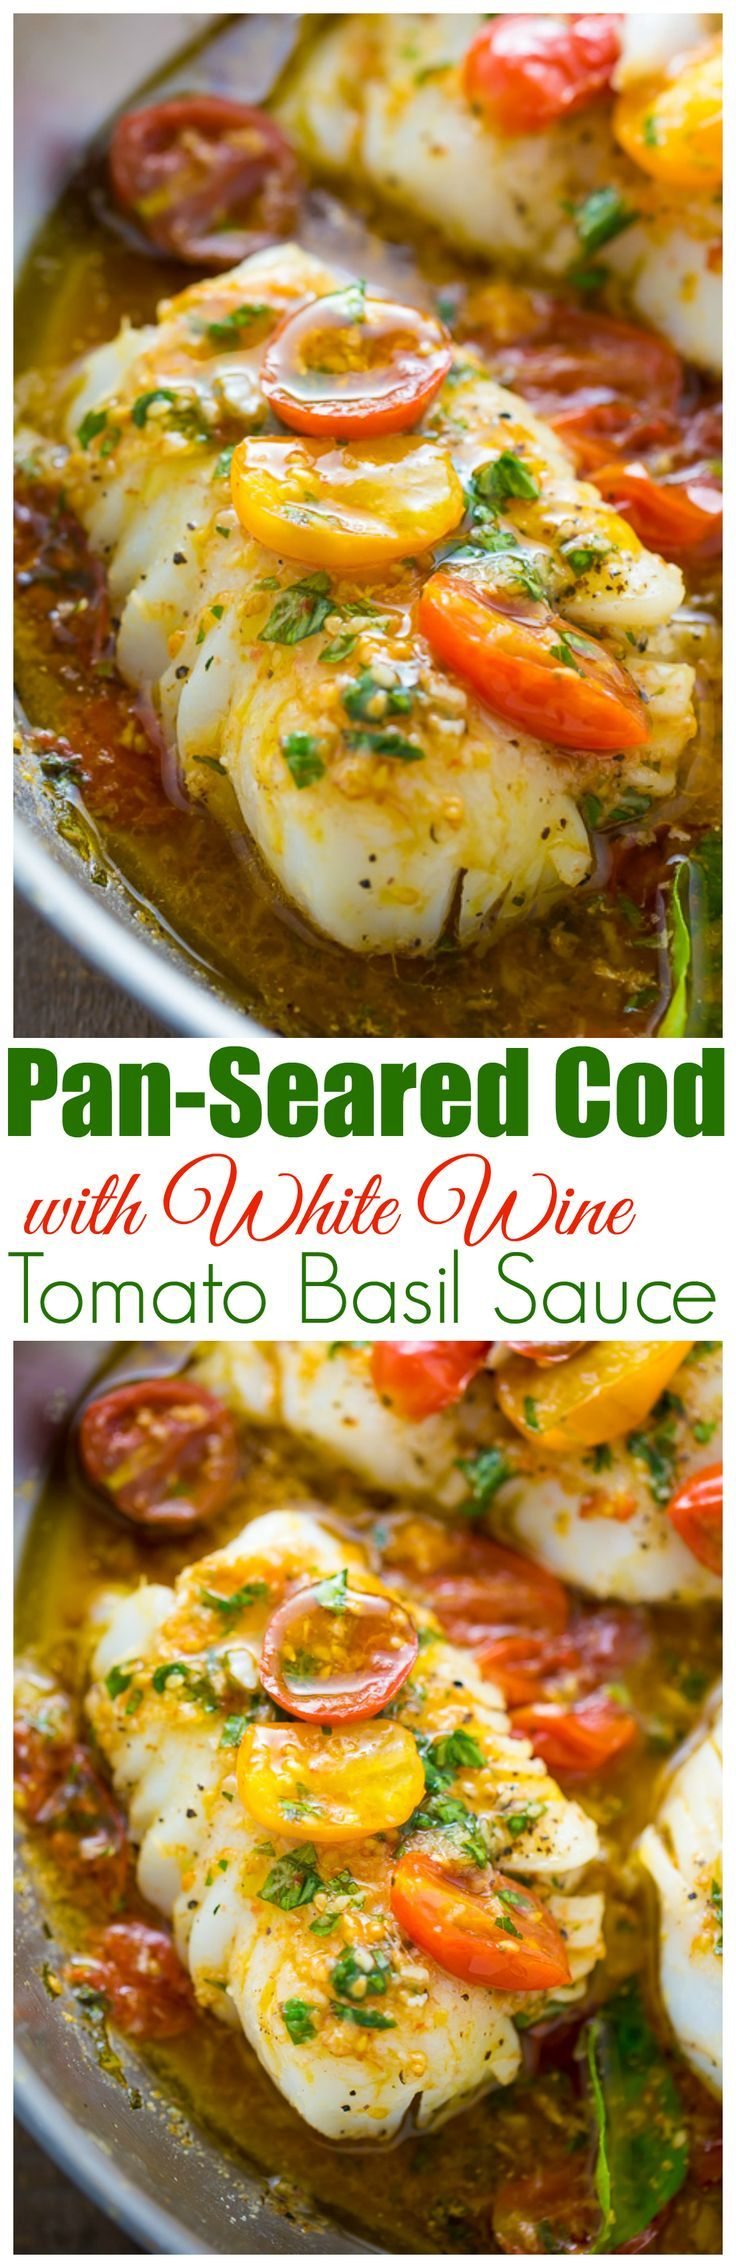 25 best ideas about white wine sauces on pinterest cod for Sauce for cod fish